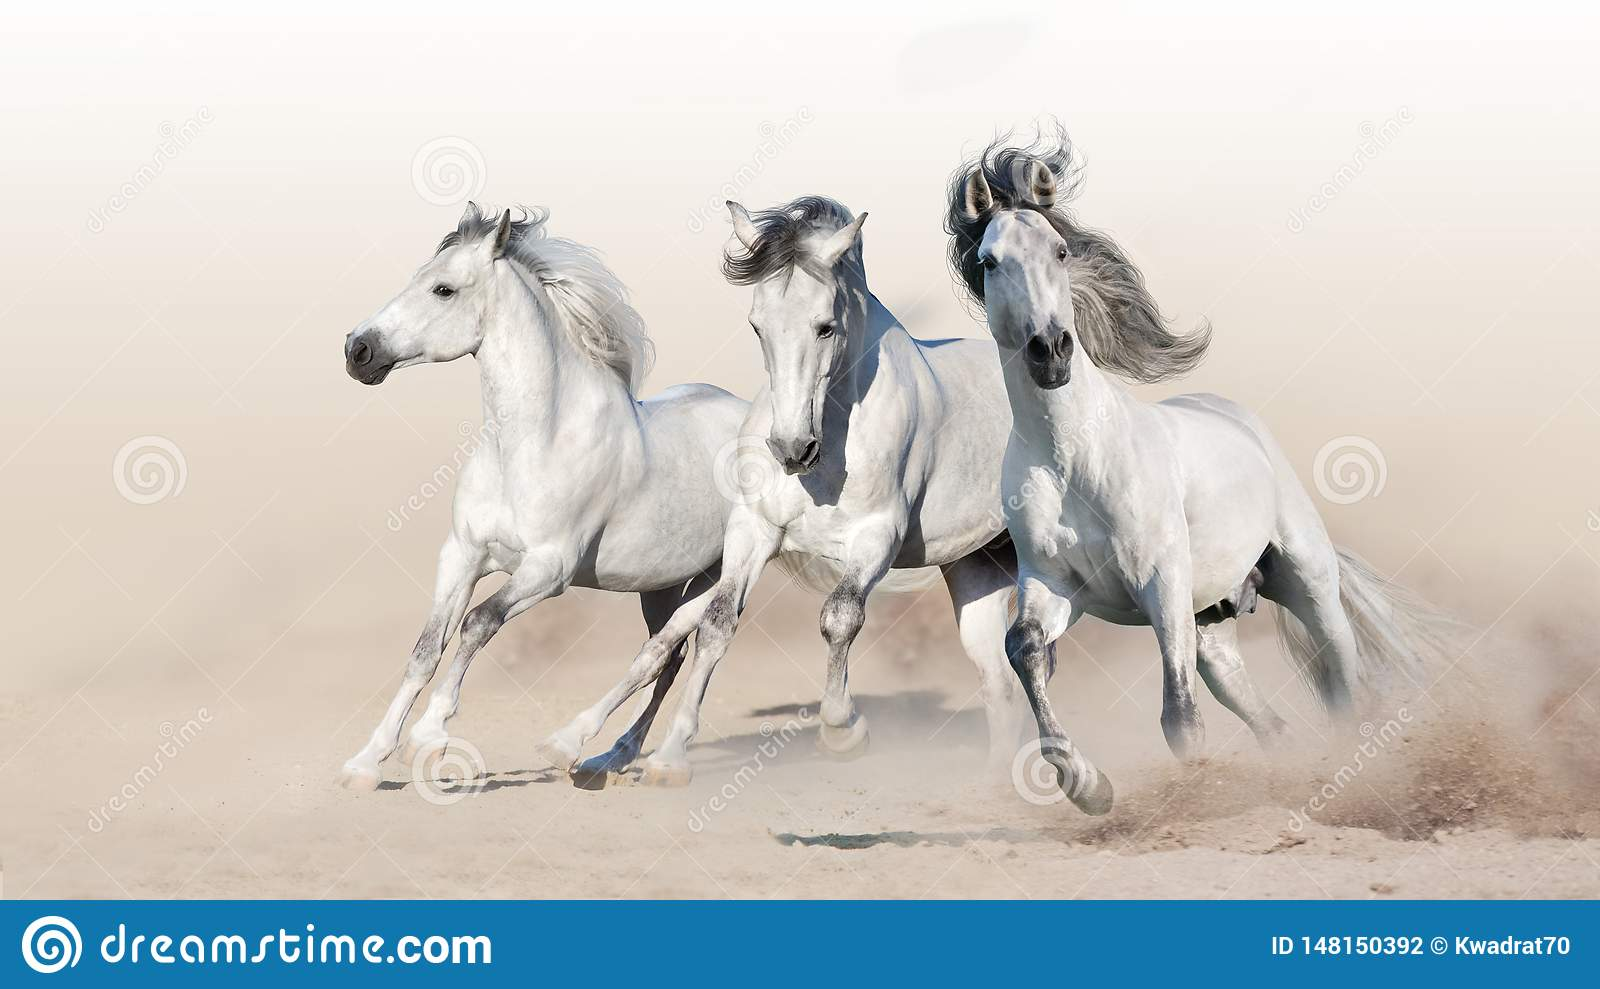 162 327 White Horse Photos Free Royalty Free Stock Photos From Dreamstime